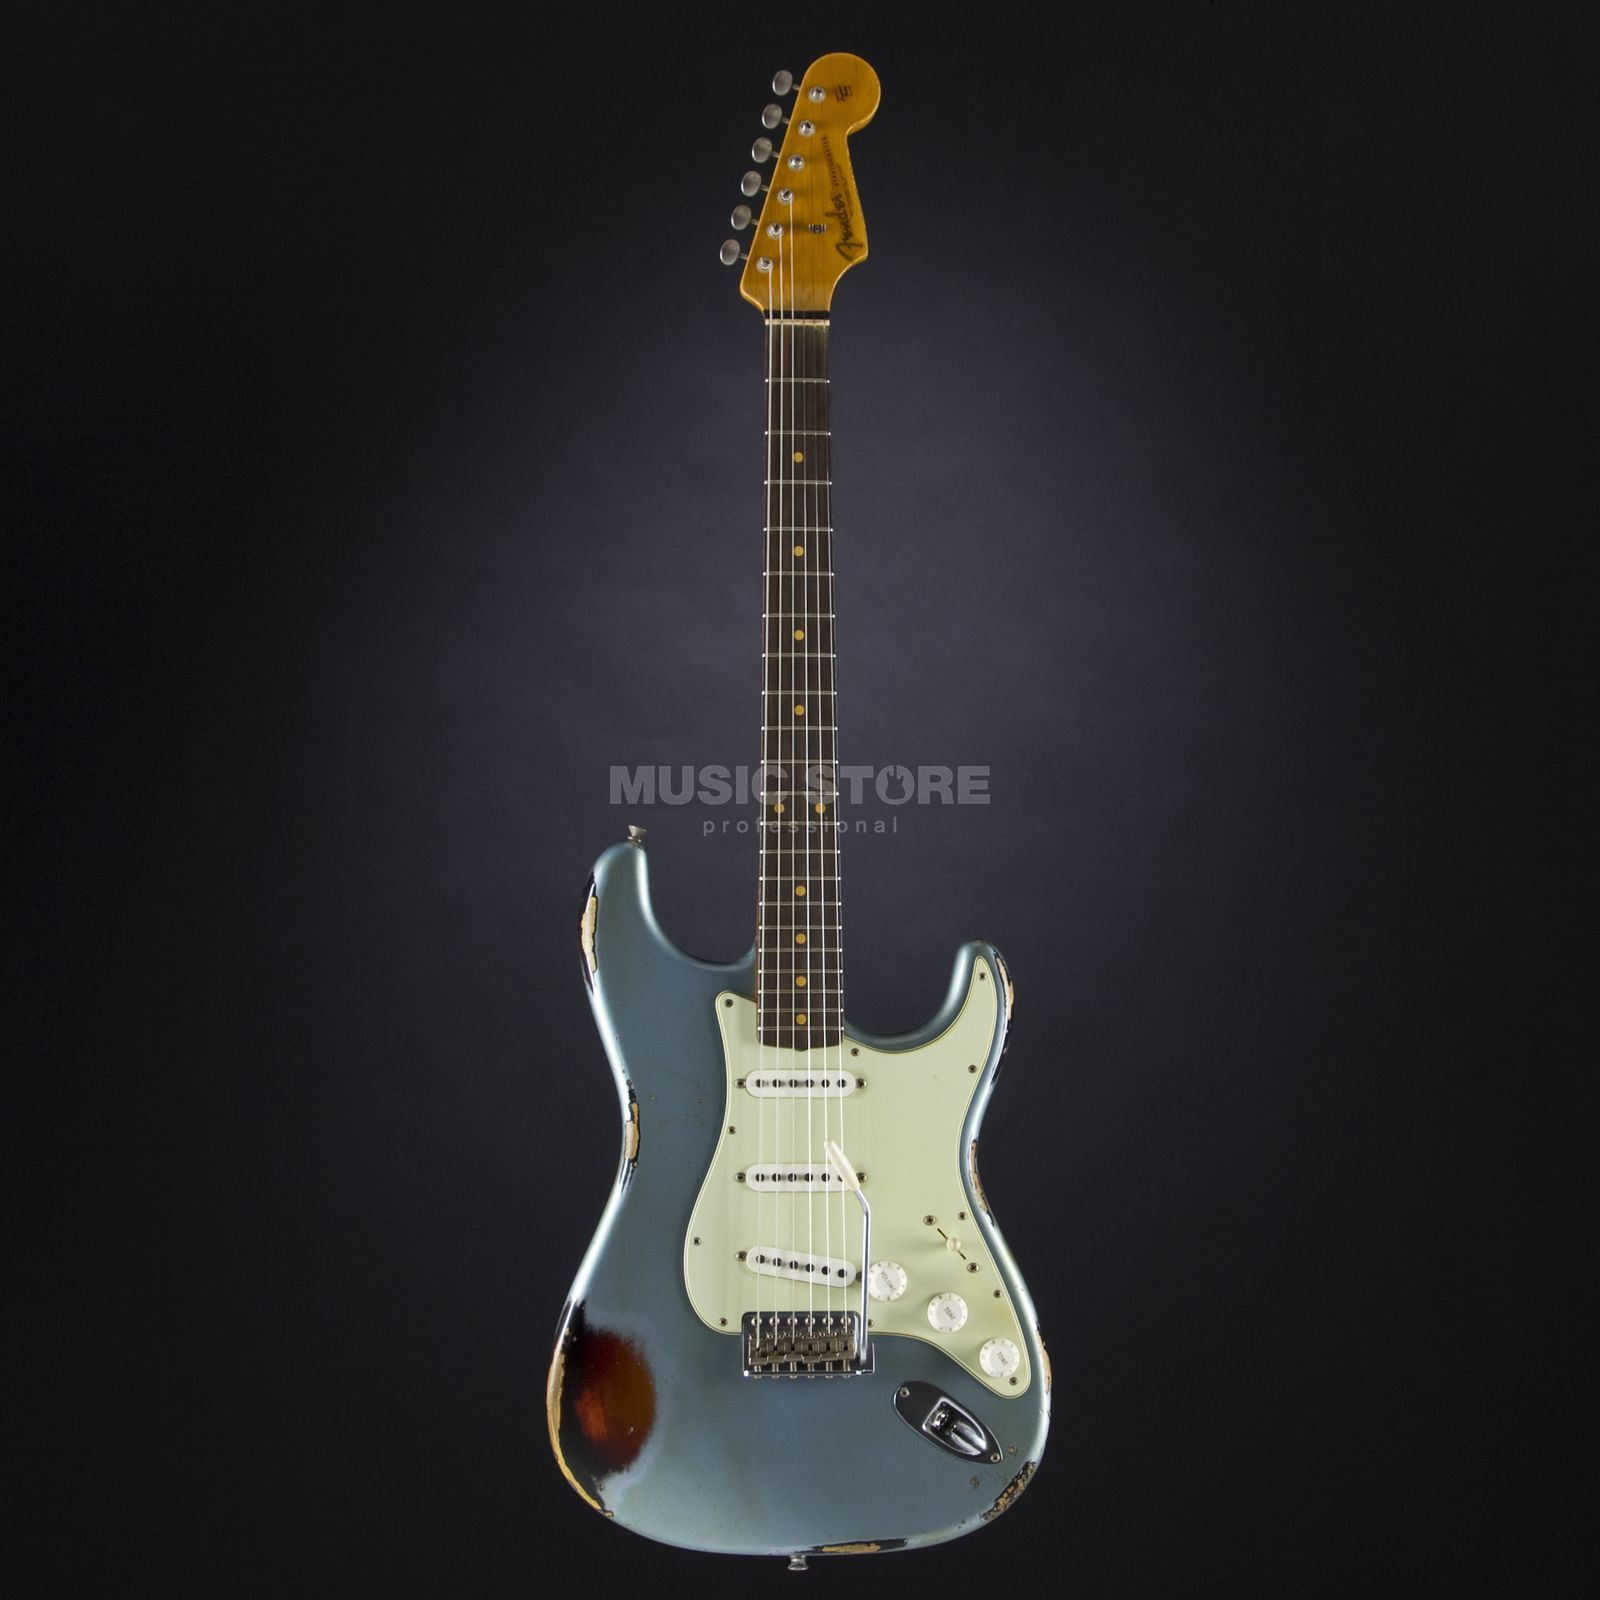 Fender 1962 Heavy Relic Stratocaster Ice Blue Metallic over 3-Tone Sunburst #R80269 Produktbillede